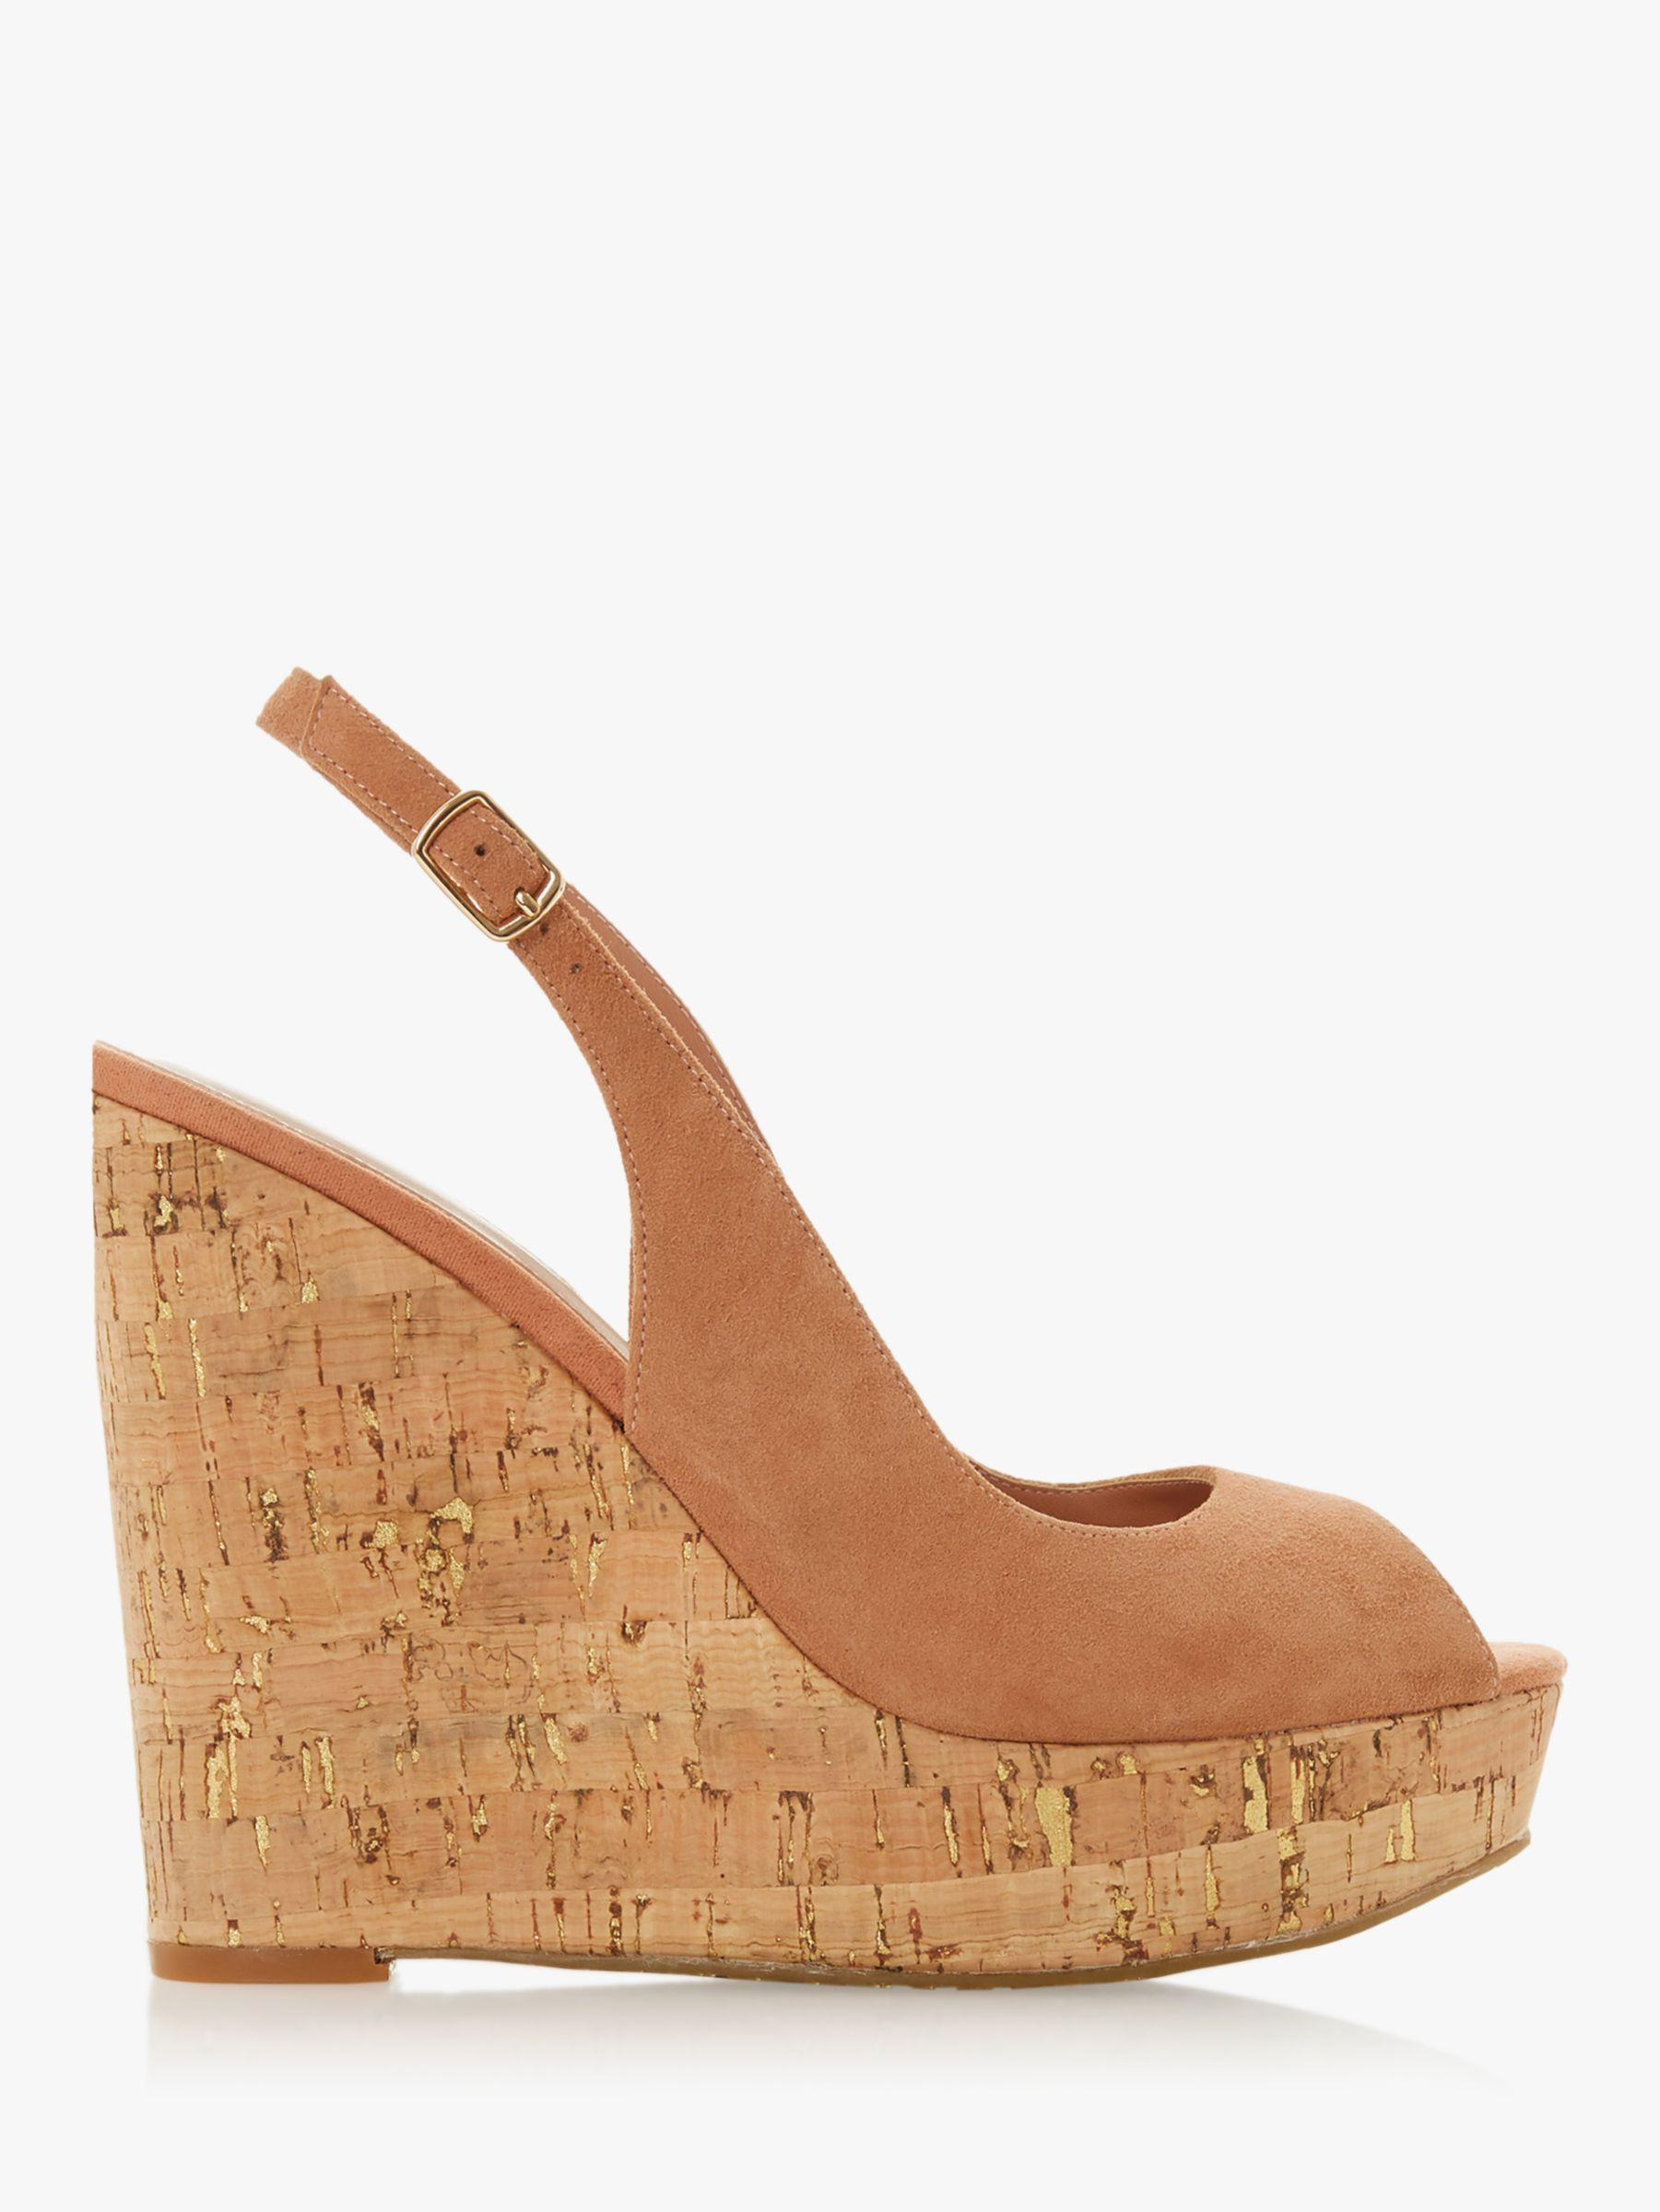 c4ce2be46ec Dune Kimmber High Wedge Sandals in Natural - Lyst